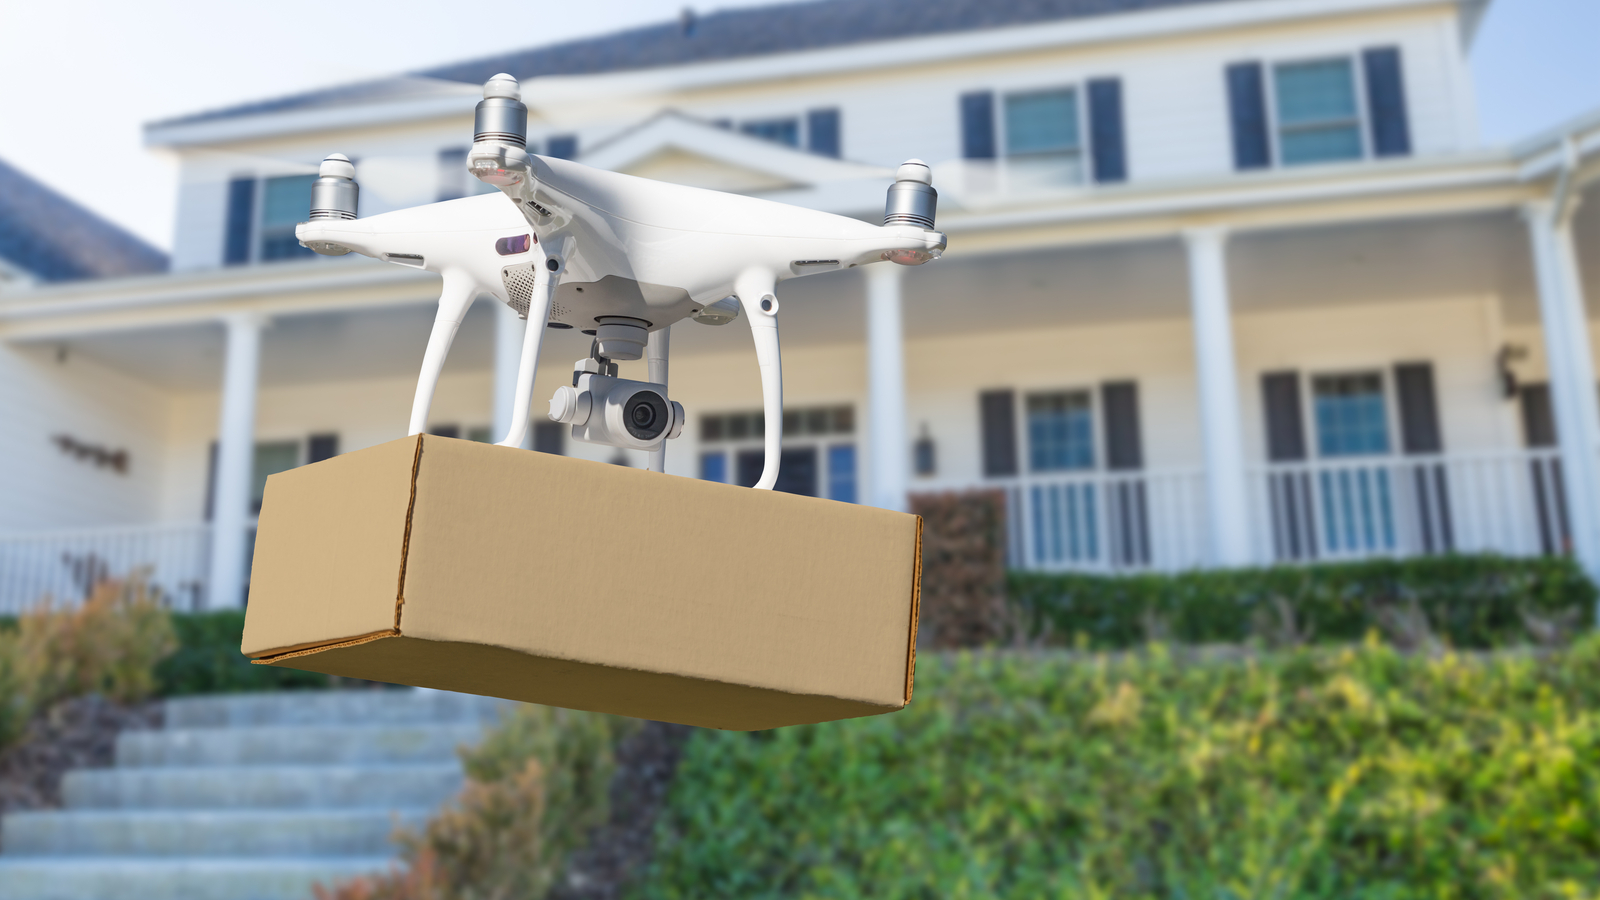 UAV News: Deuce Drone Partners With Rouses for Grocery Delivery by Drone thumbnail